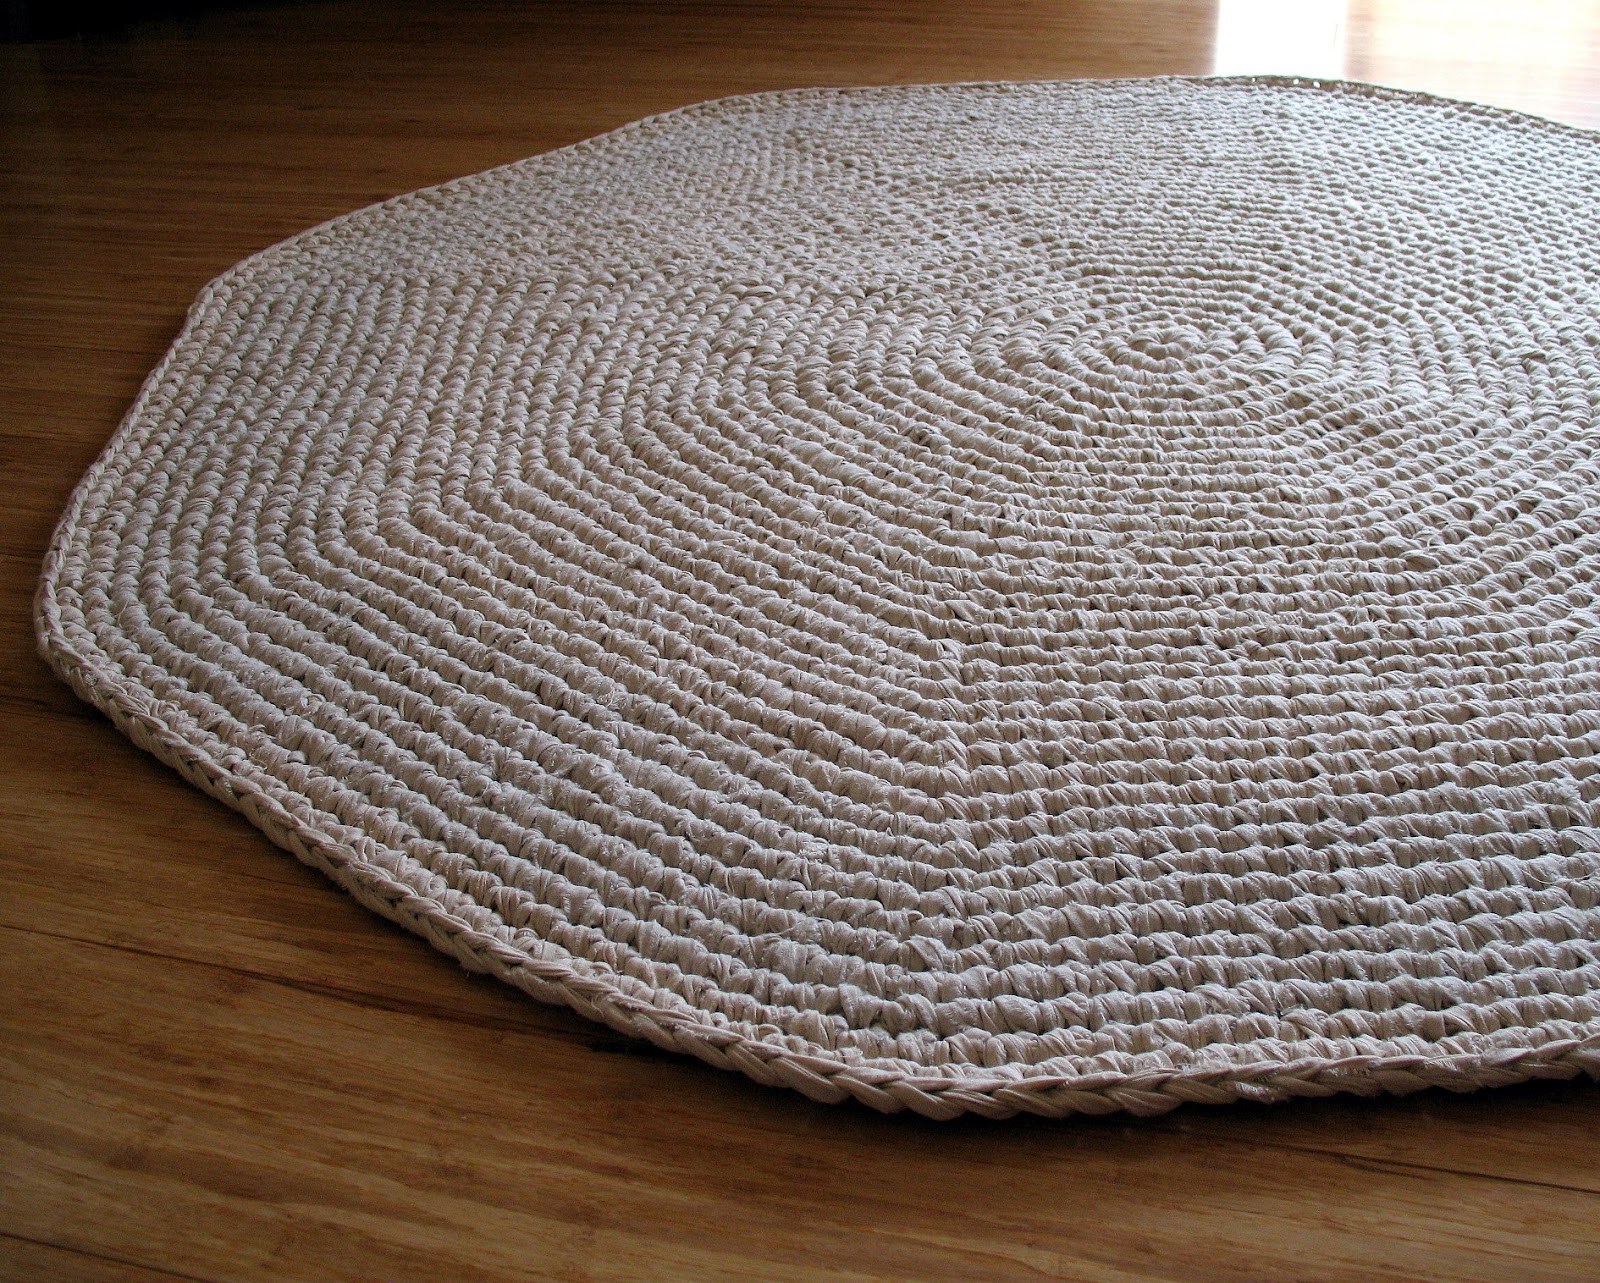 Crochet Patterns Free Rugs : eclectic me: Calico Crochet Rug & Pattern.....